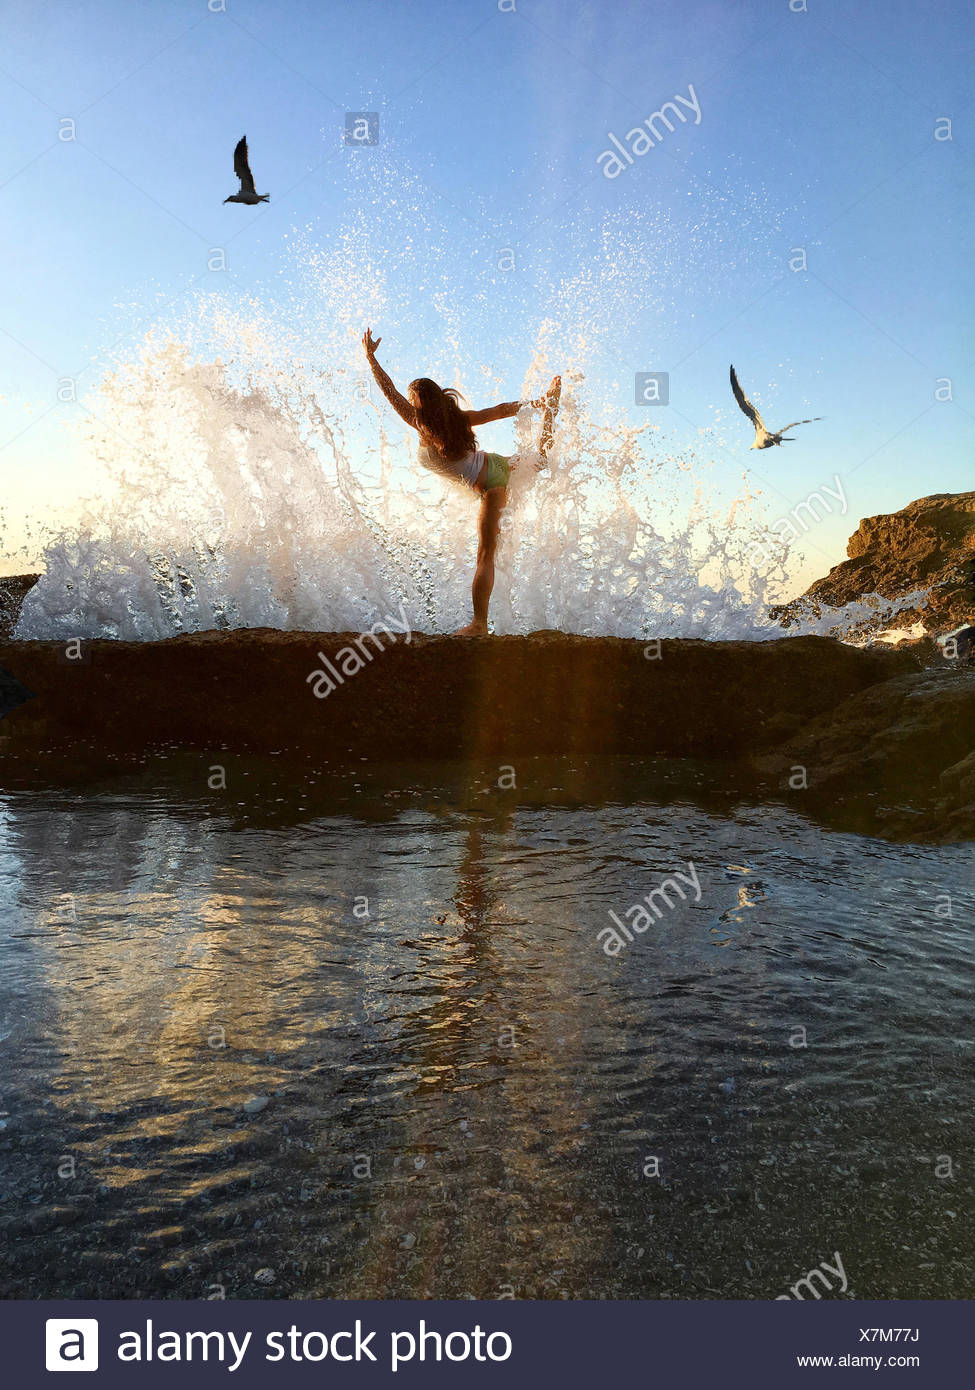 Woman in still bow yoga pose on cliffs at beach - Stock Image